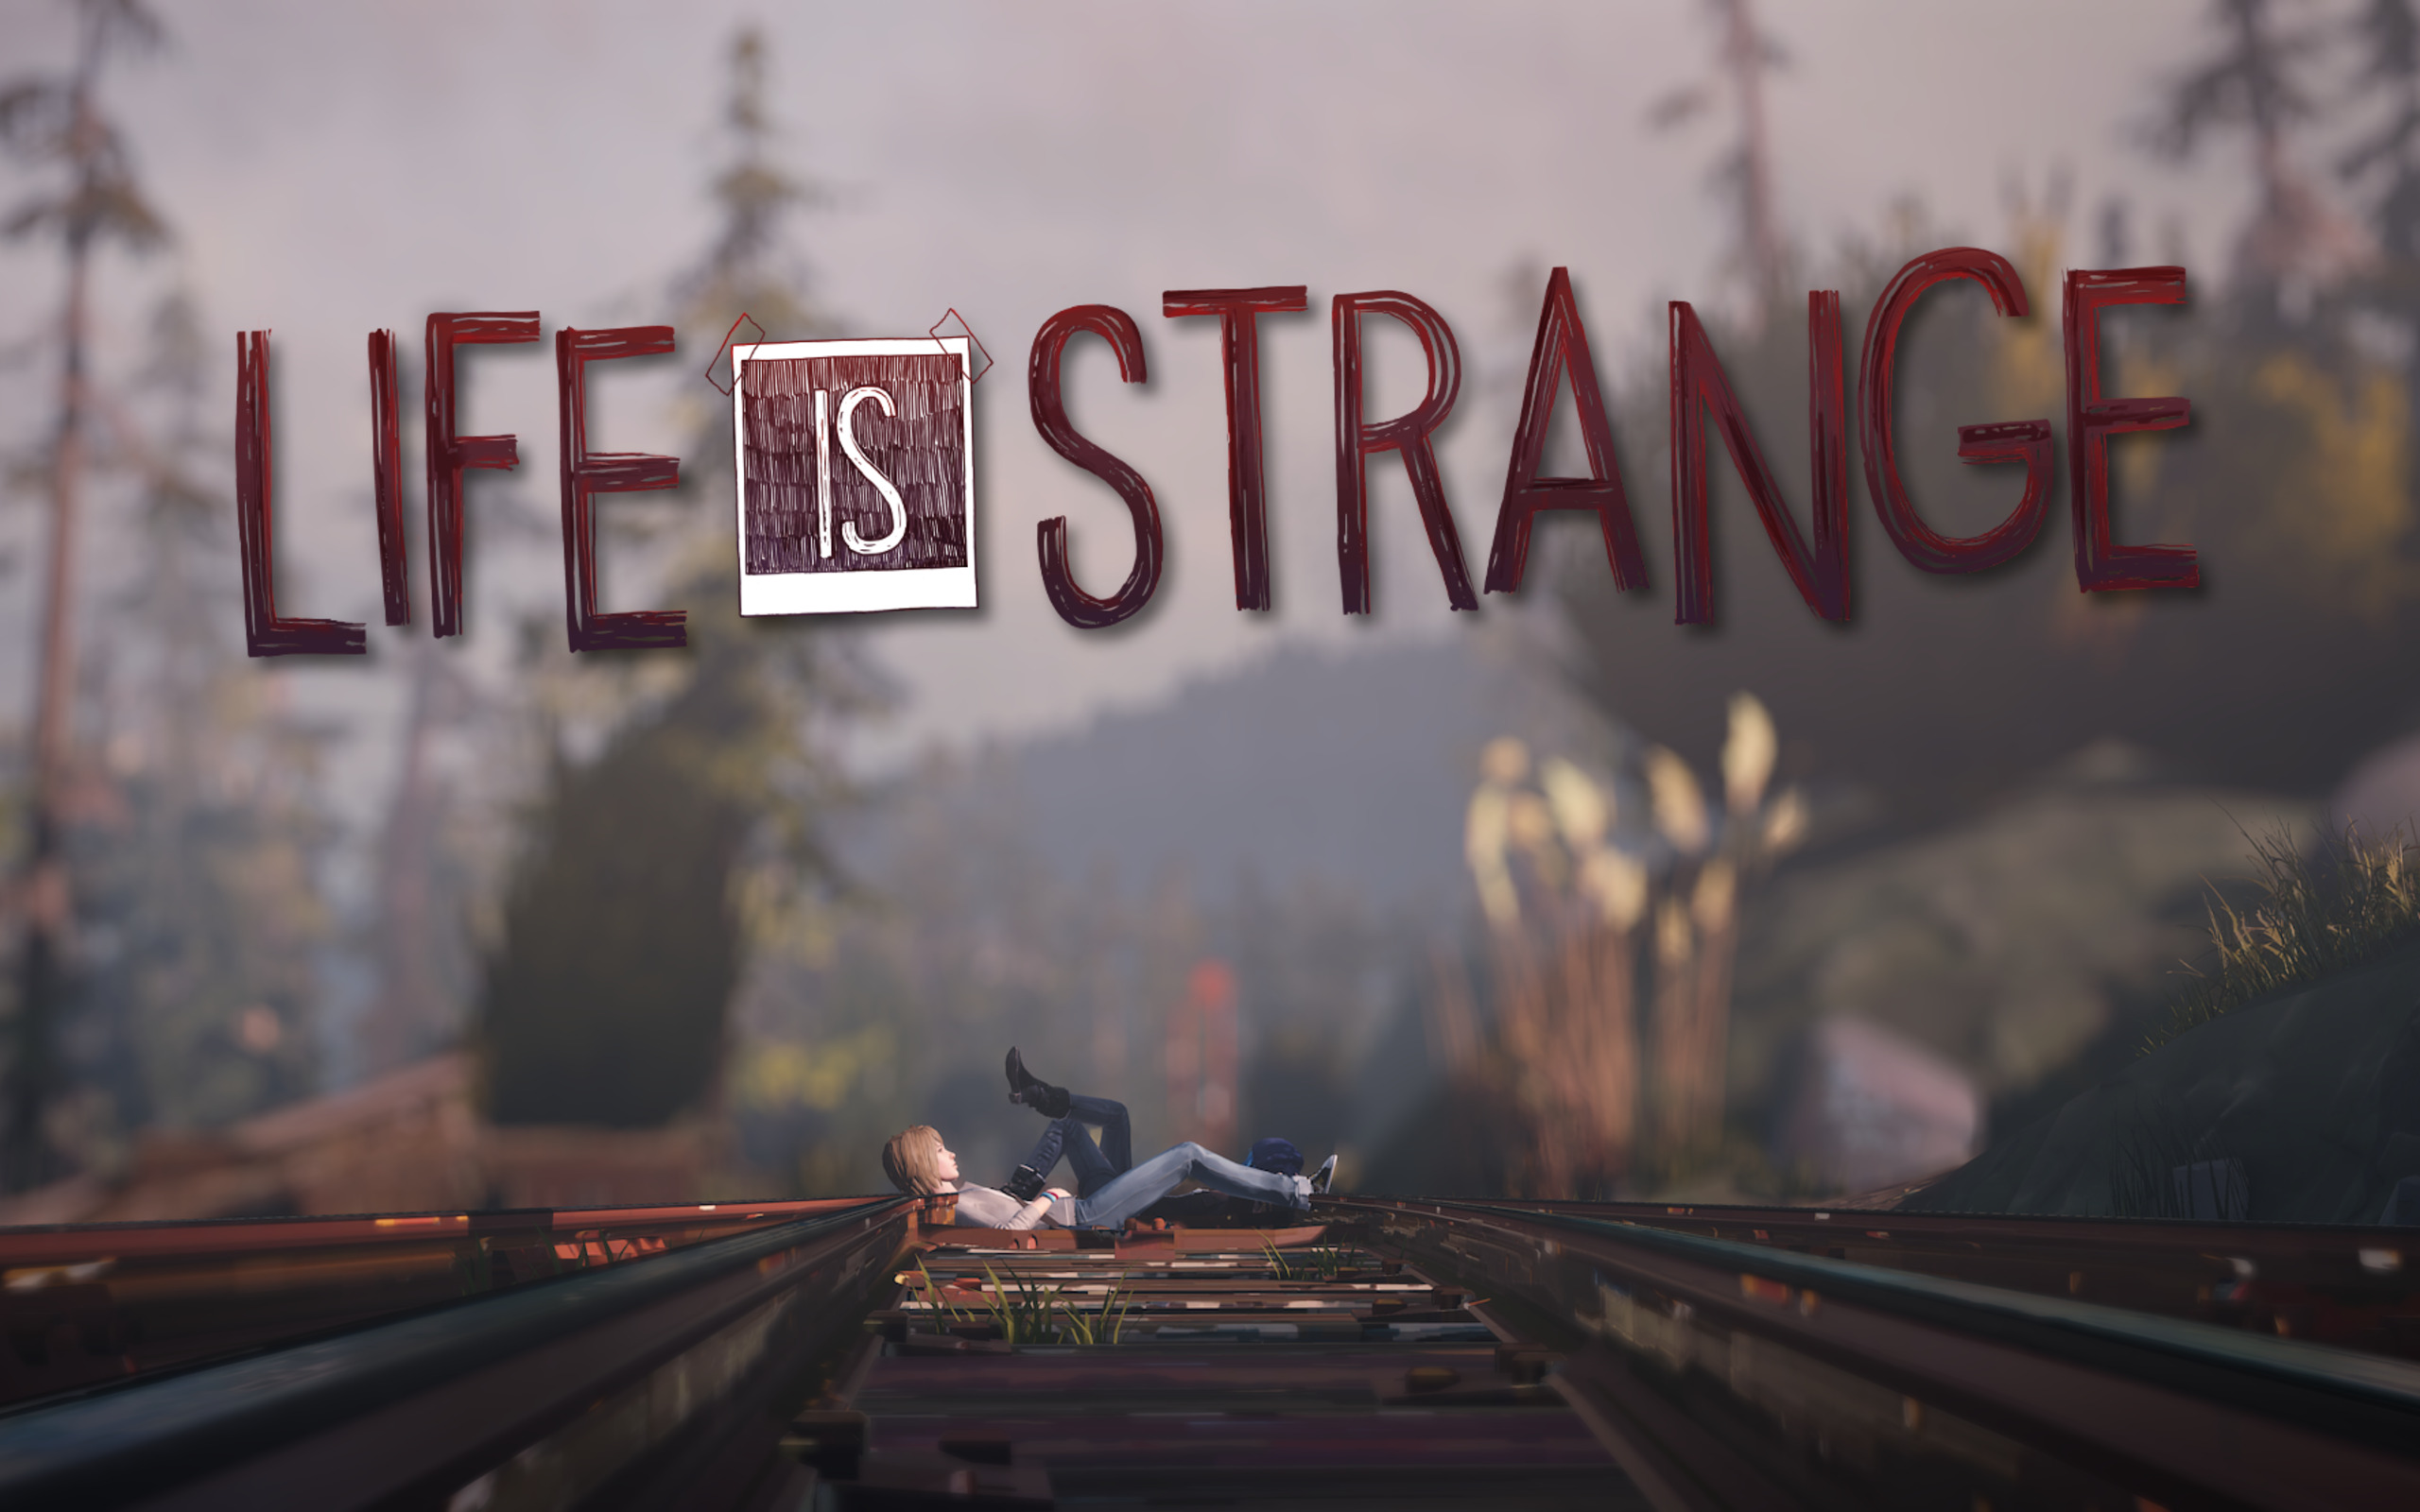 2560x1600 Max Caulfield Life Is Strange 2560x1600 Resolution Hd 4k